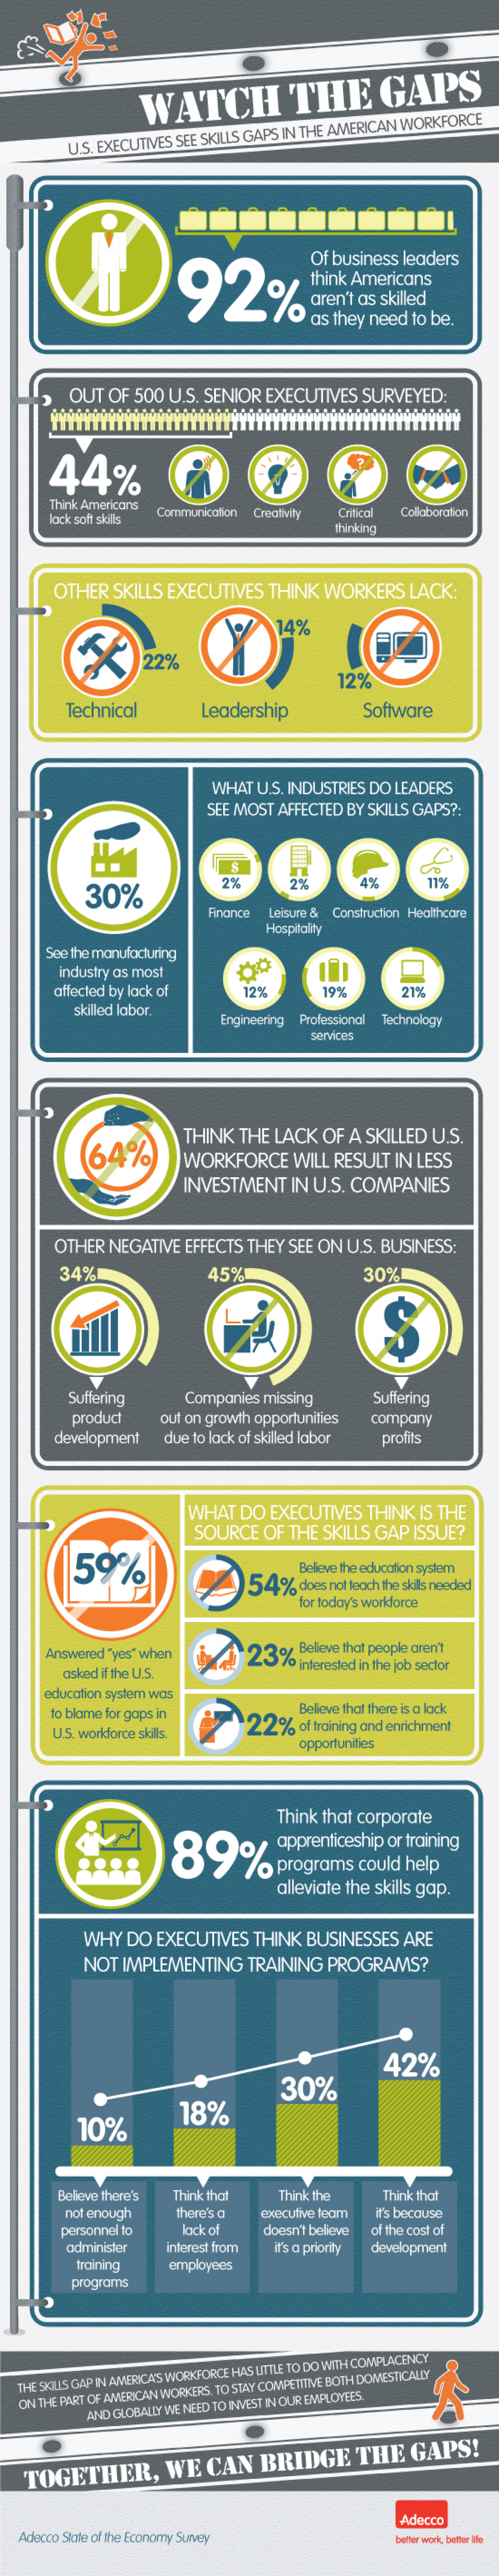 Watch the Gaps: U.S. Executives See Skills Gaps in the American Workforce Infographic